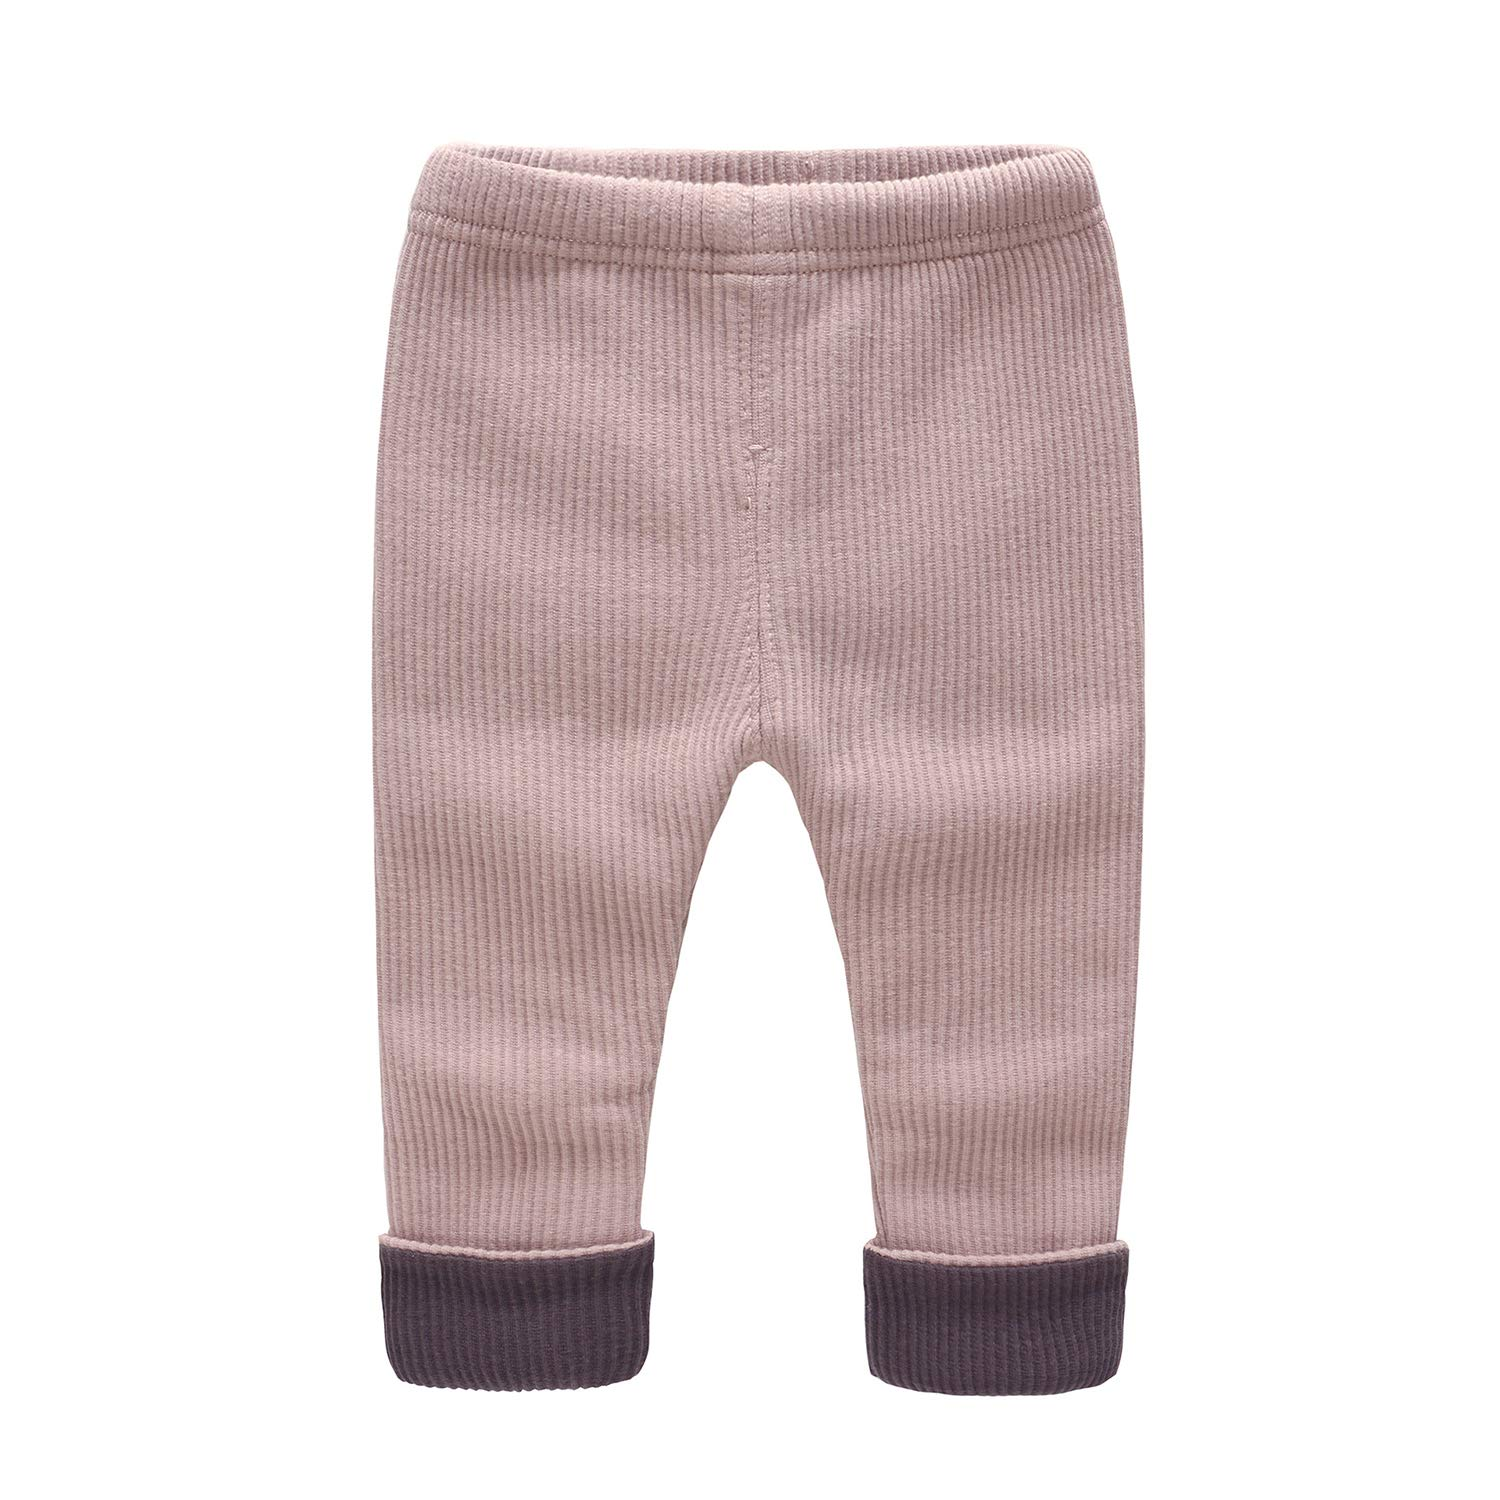 Baby Leggings Winter Trousers Toddler Boys Girls Jogging Bottoms Fleece Pants Vine Trading Co. Ltd